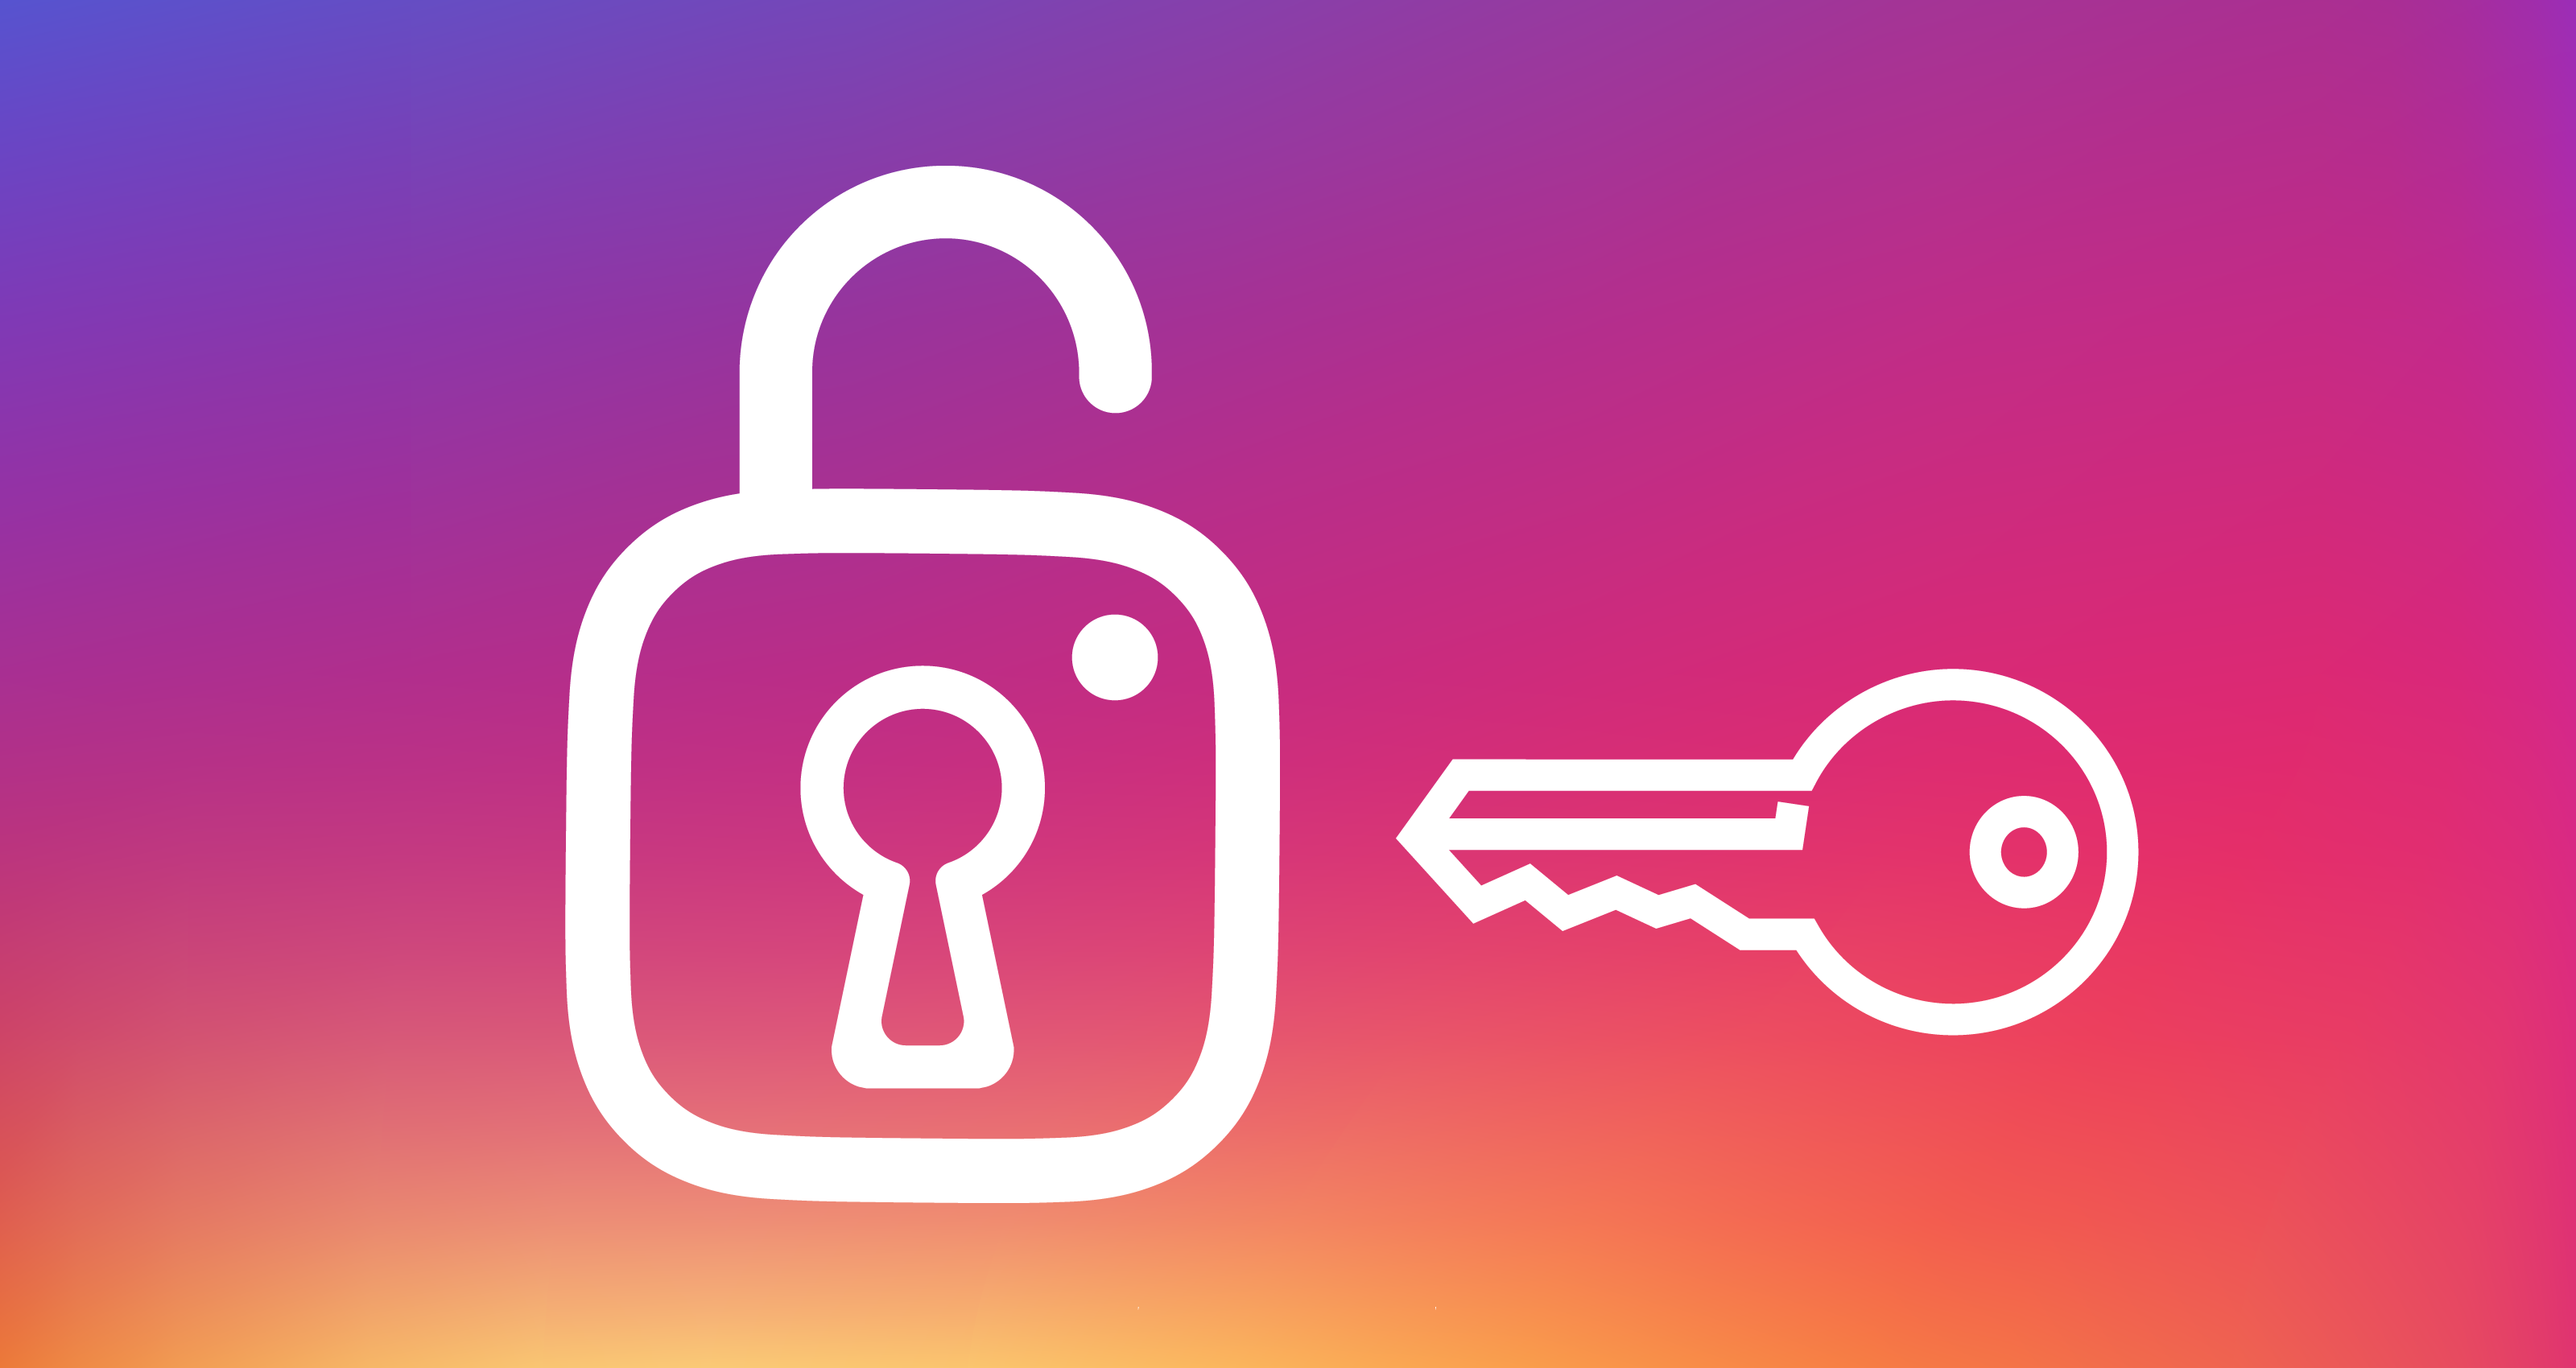 Hack An Instagram Account Within15 Minutes!